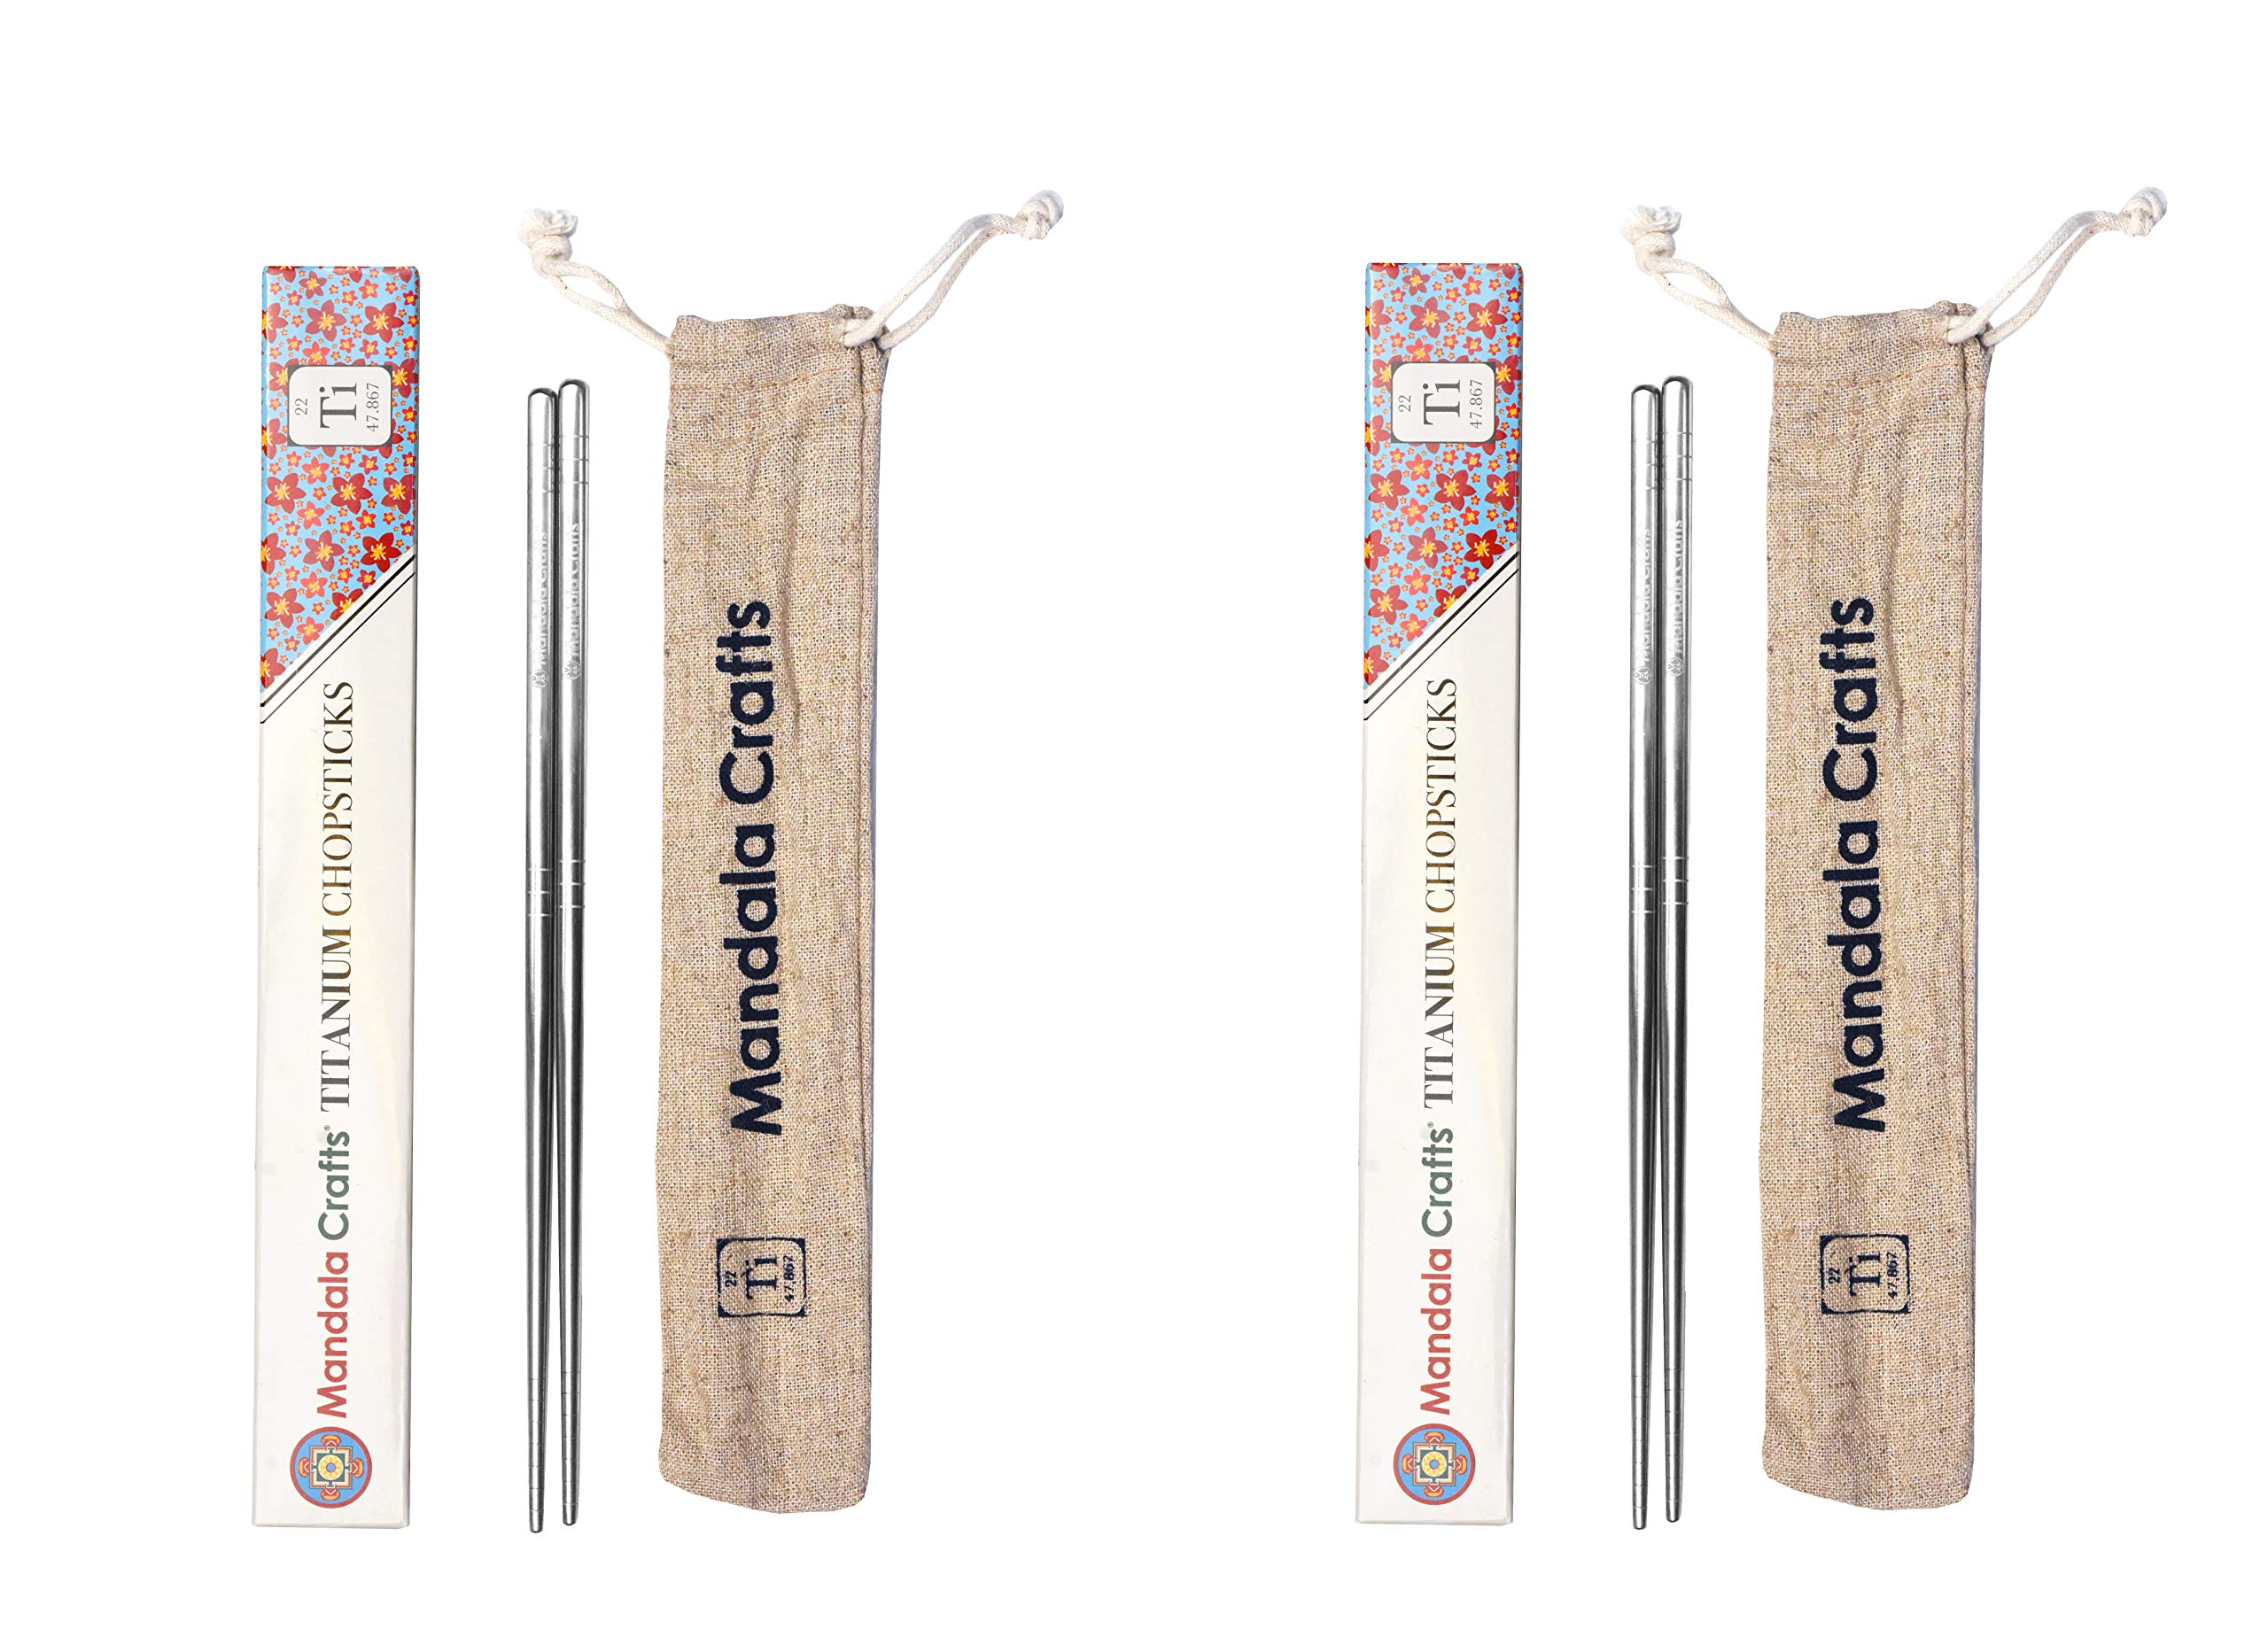 Mandala Crafts Reusable Titanium Chopstick Set with Case for Adults and Kids; Portable and Dishwasher Safe, Pack of 2 Pairs, Square Handle